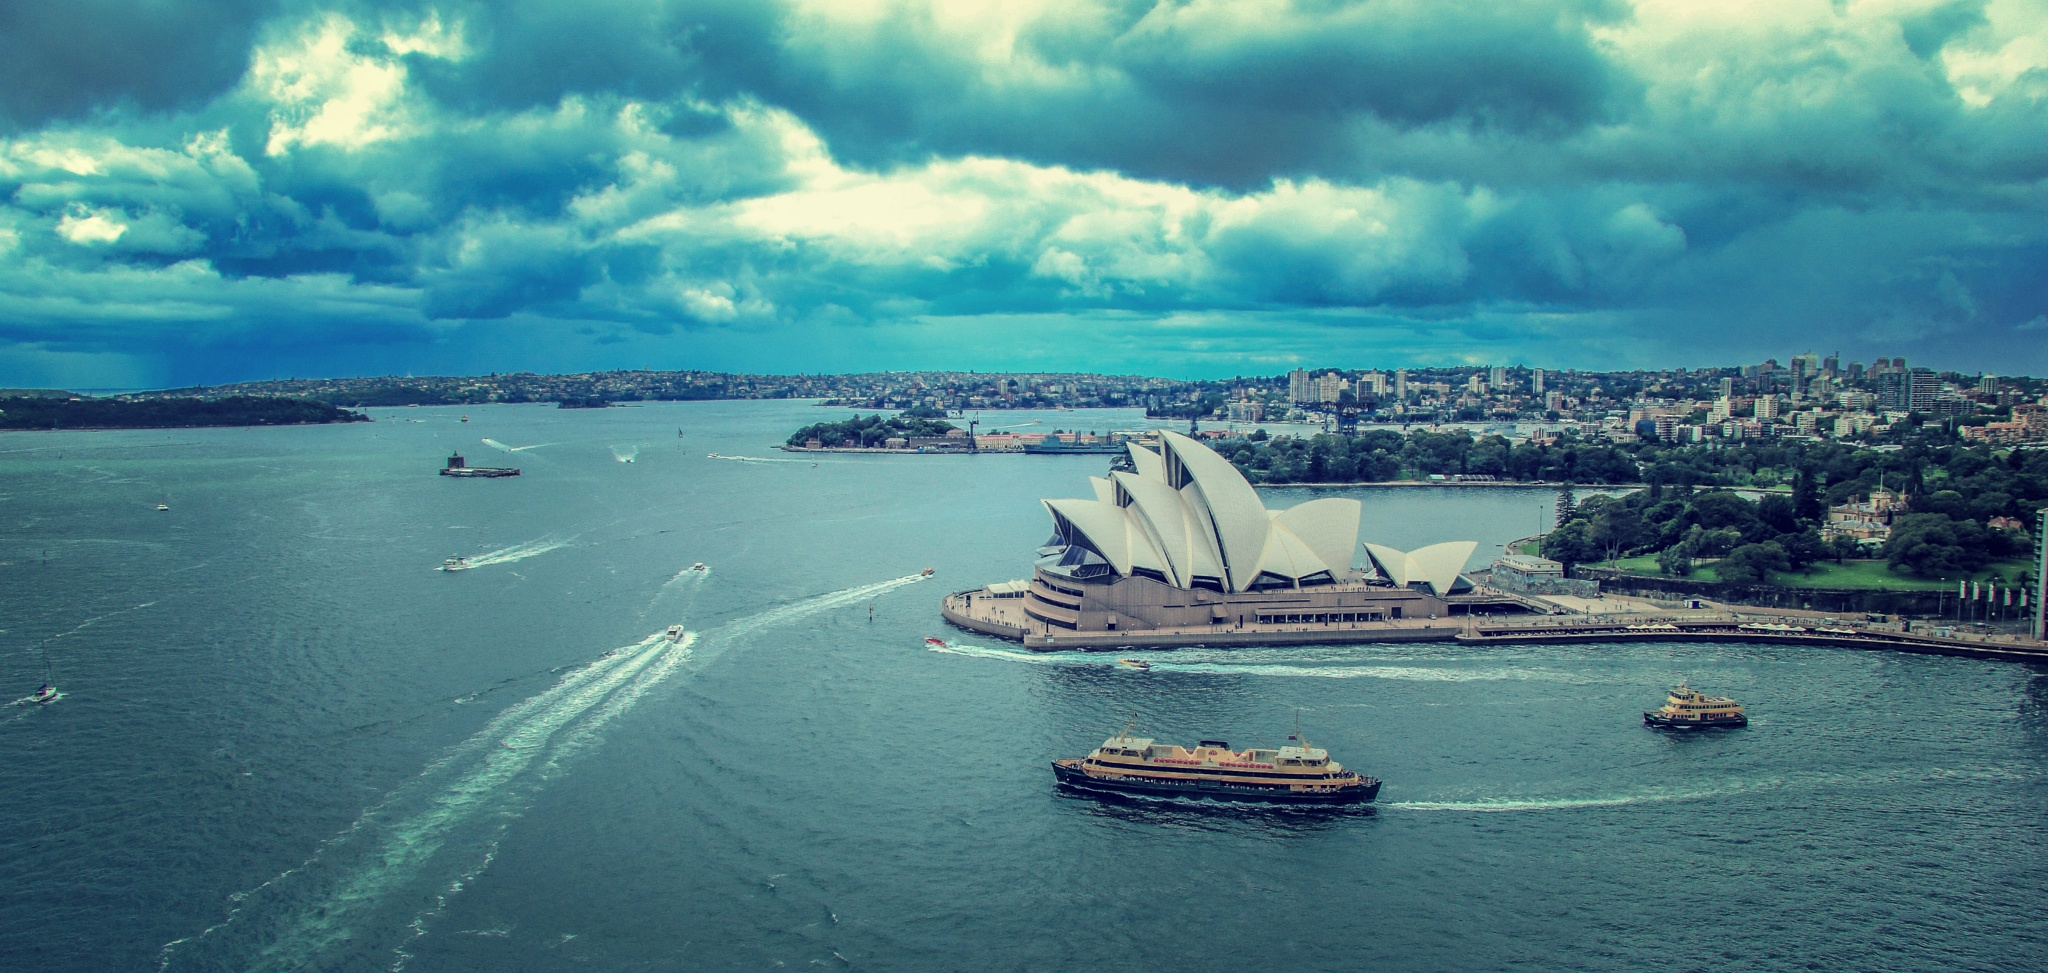 storm brewing over the city by julz